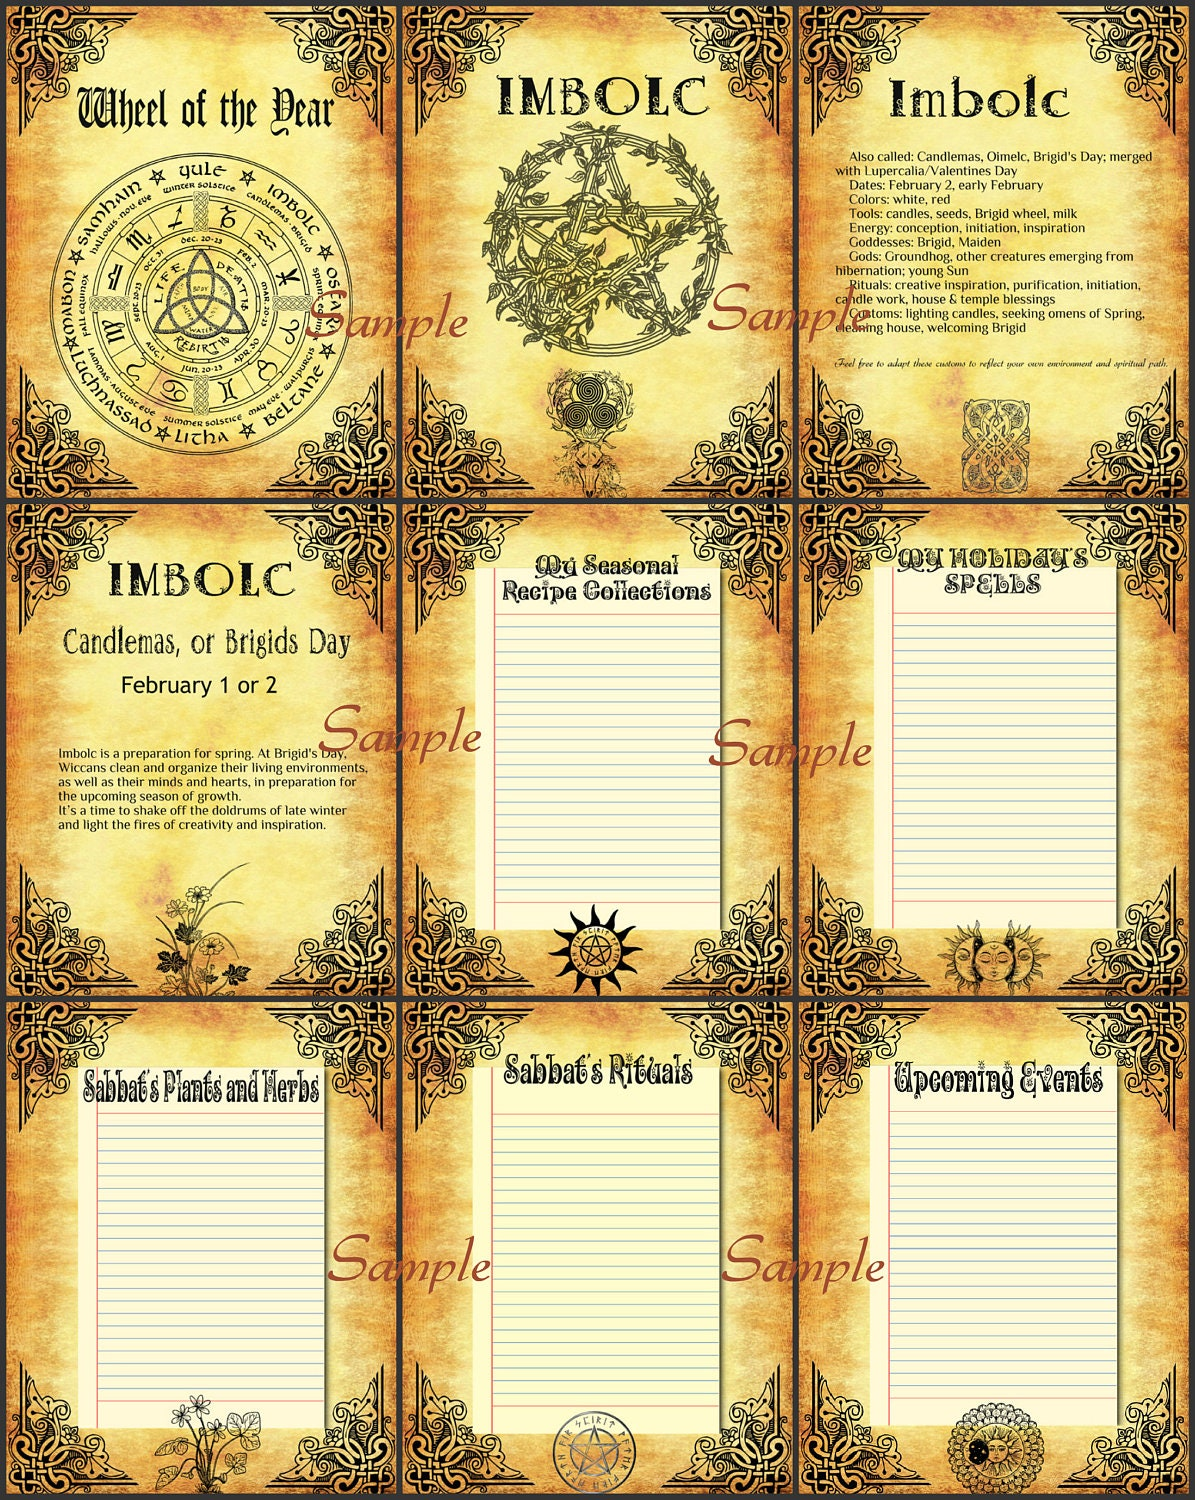 Imbolc traditions 10 Pages Wiccans rituals Wiccan Sabbats